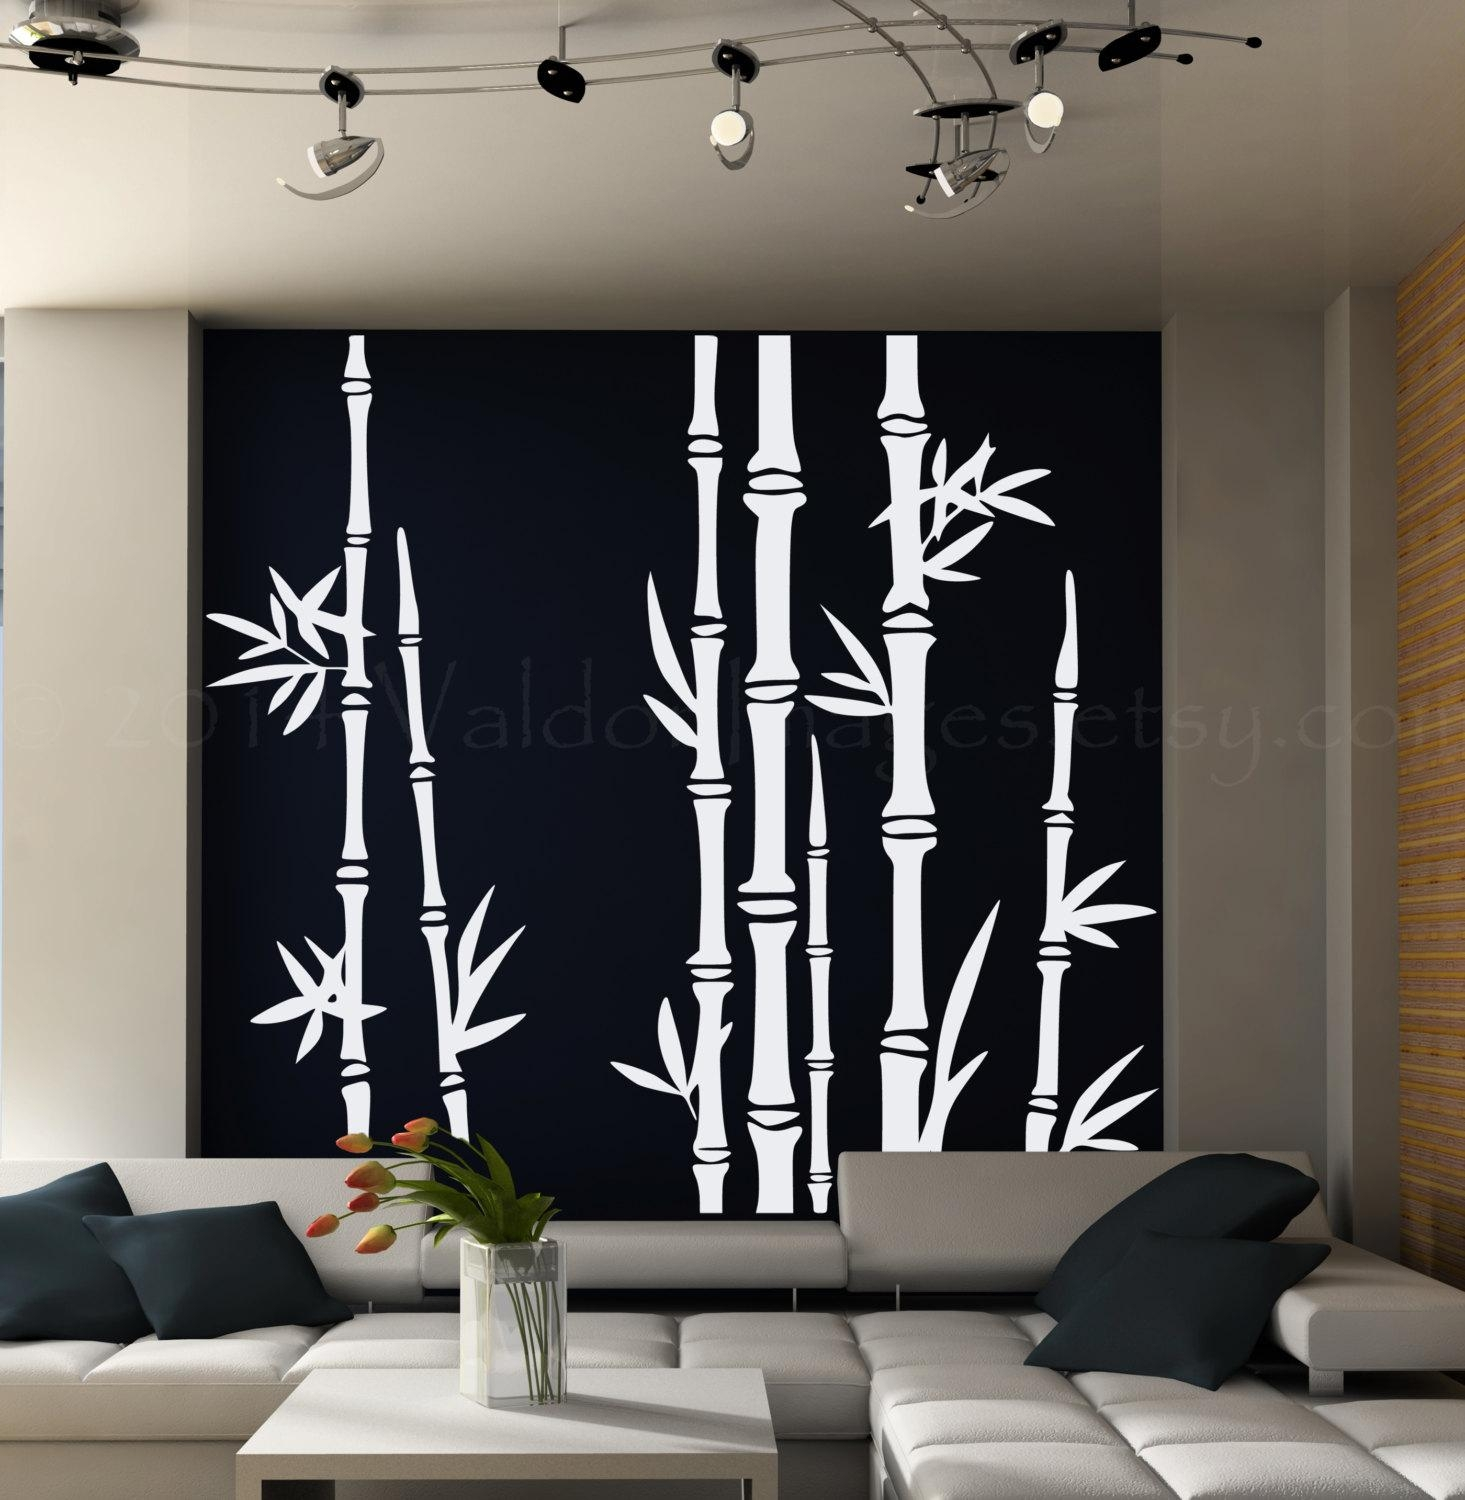 Bamboo Tree Wall Decal Living Room Wall Decal Tree Wall For Pine Tree Wall Art (Image 3 of 20)